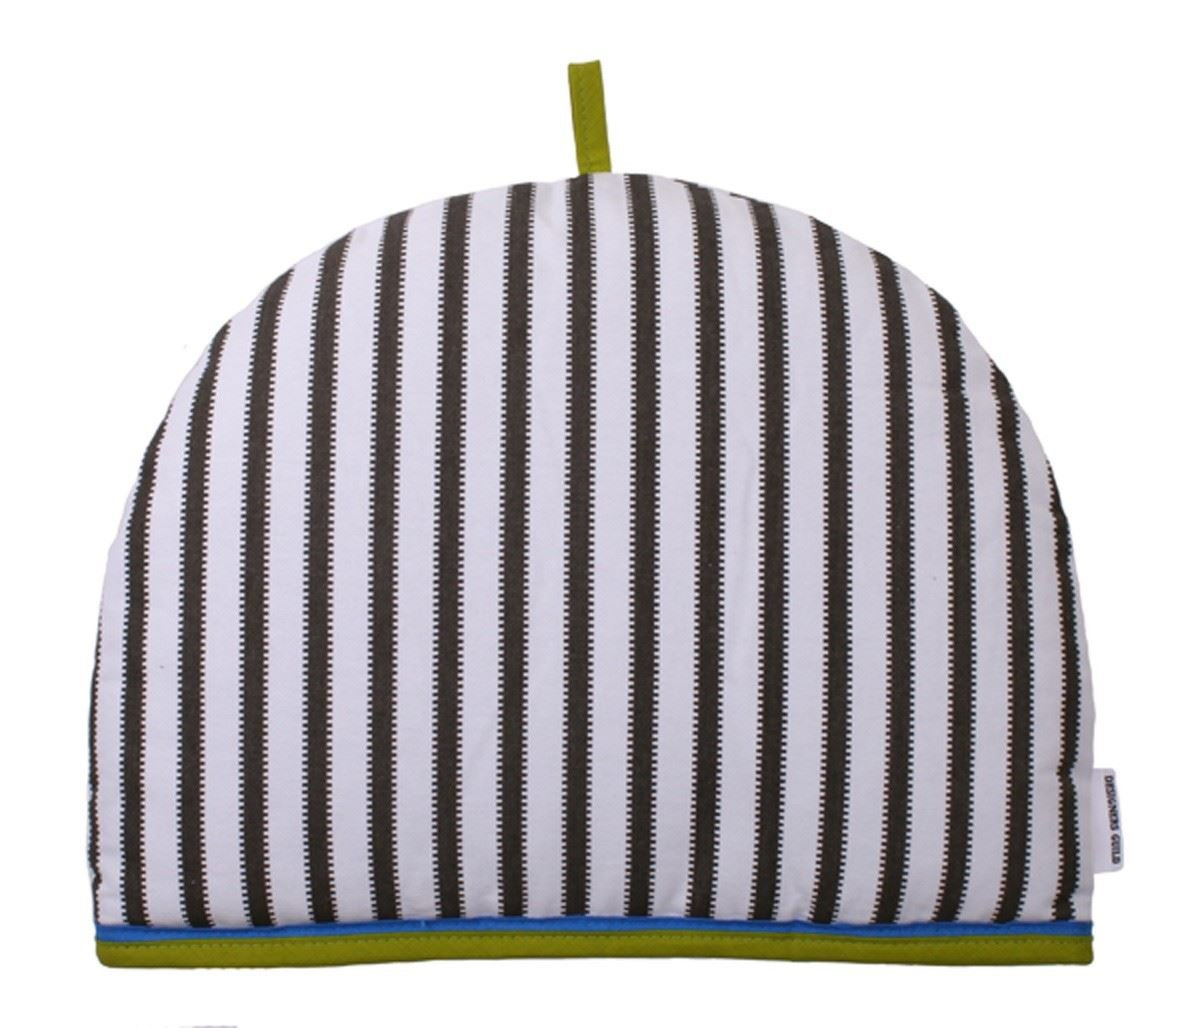 Ulster Weavers Franchini Grey Stripe Cotton Tea Cosy Cozie